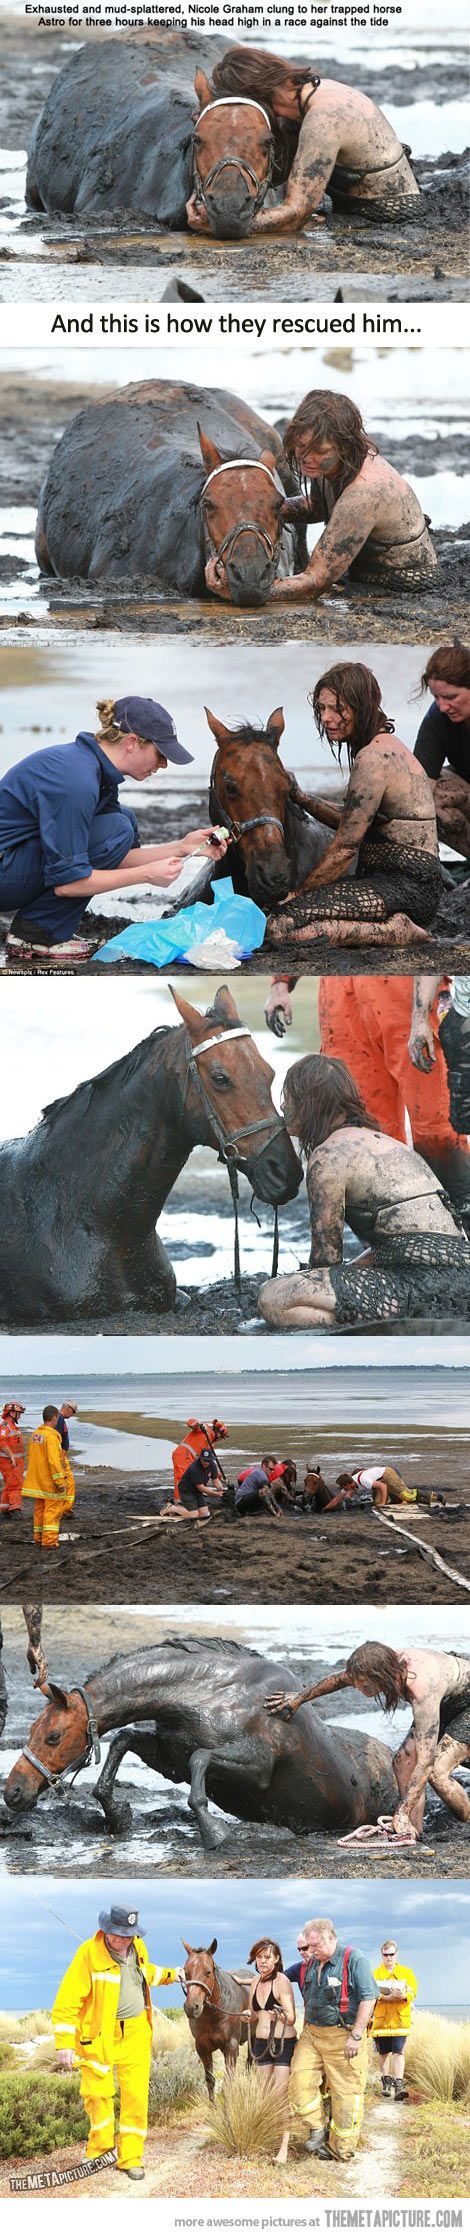 This girl restores faith in humanity…any horse owner would do this cause our horses are our family